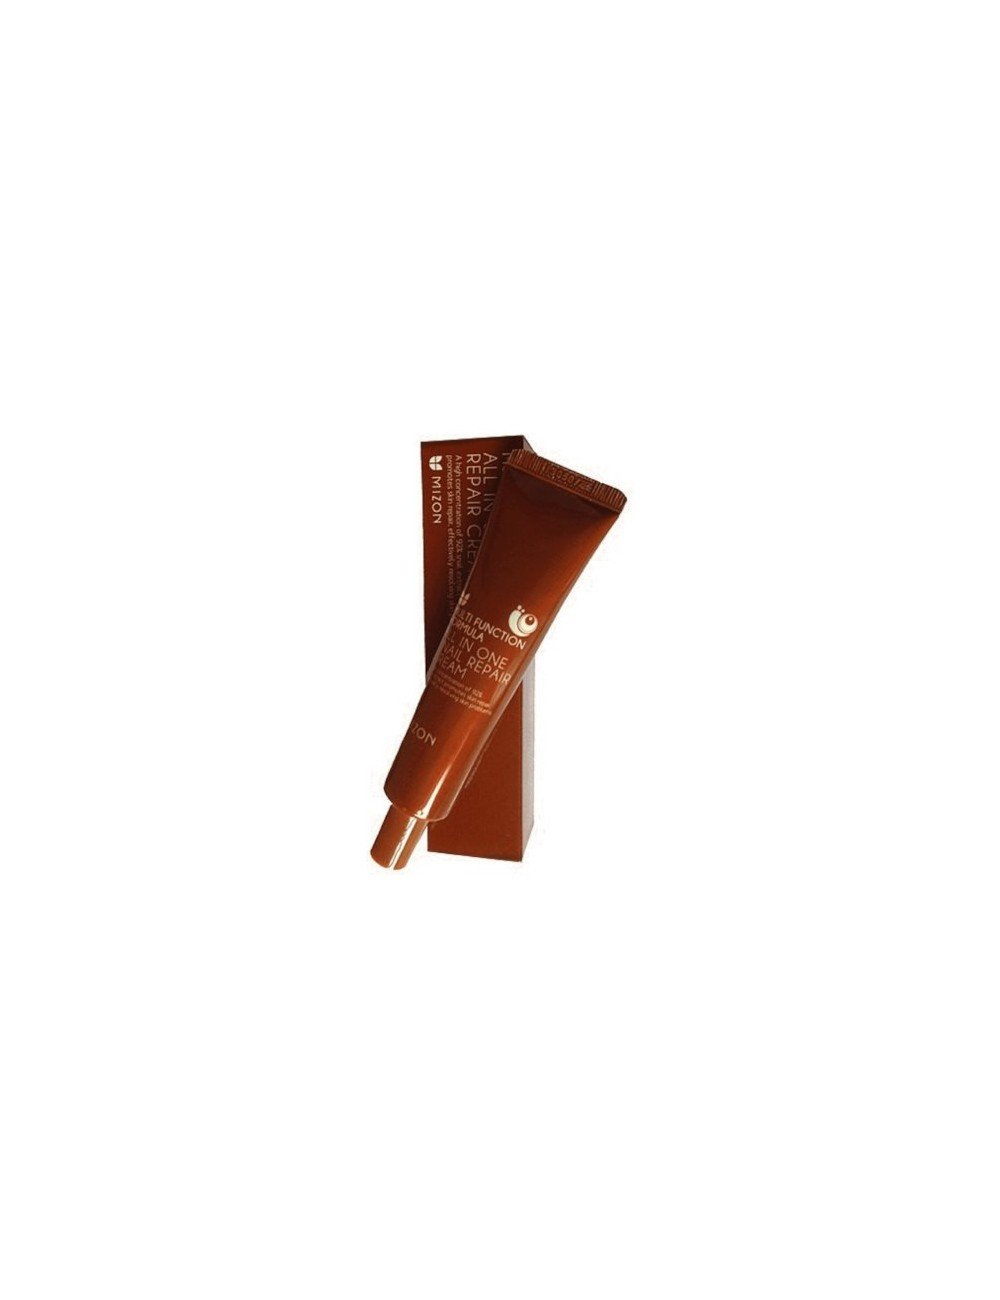 Crema Regenerante Mizon Al In One Snail Repair Cream Tube